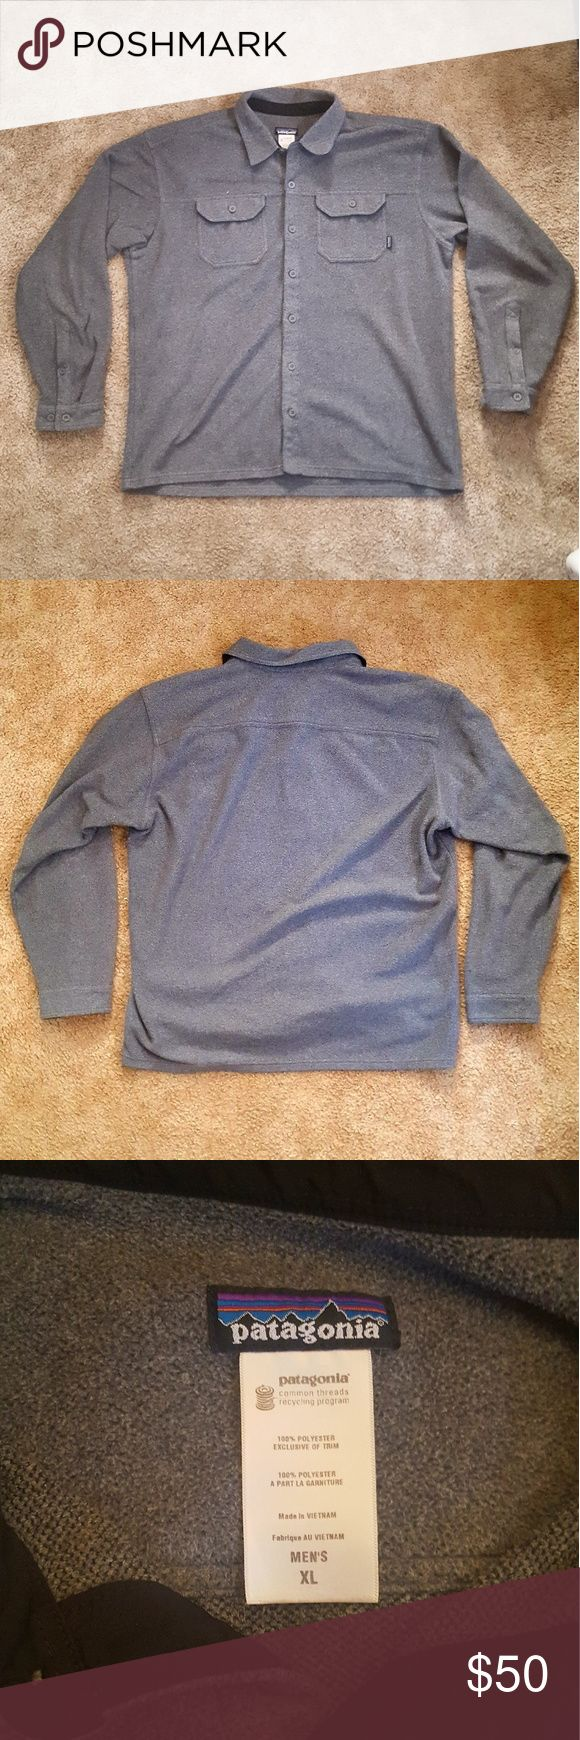 Men's Patagonia Fleece Jacket Size XL Men's grey Patagonia fleece button up jacket size XL. 100% polyester and in great condition! Winter is coming, stay warm! Patagonia Jackets & Coats Lightweight & Shirt Jackets